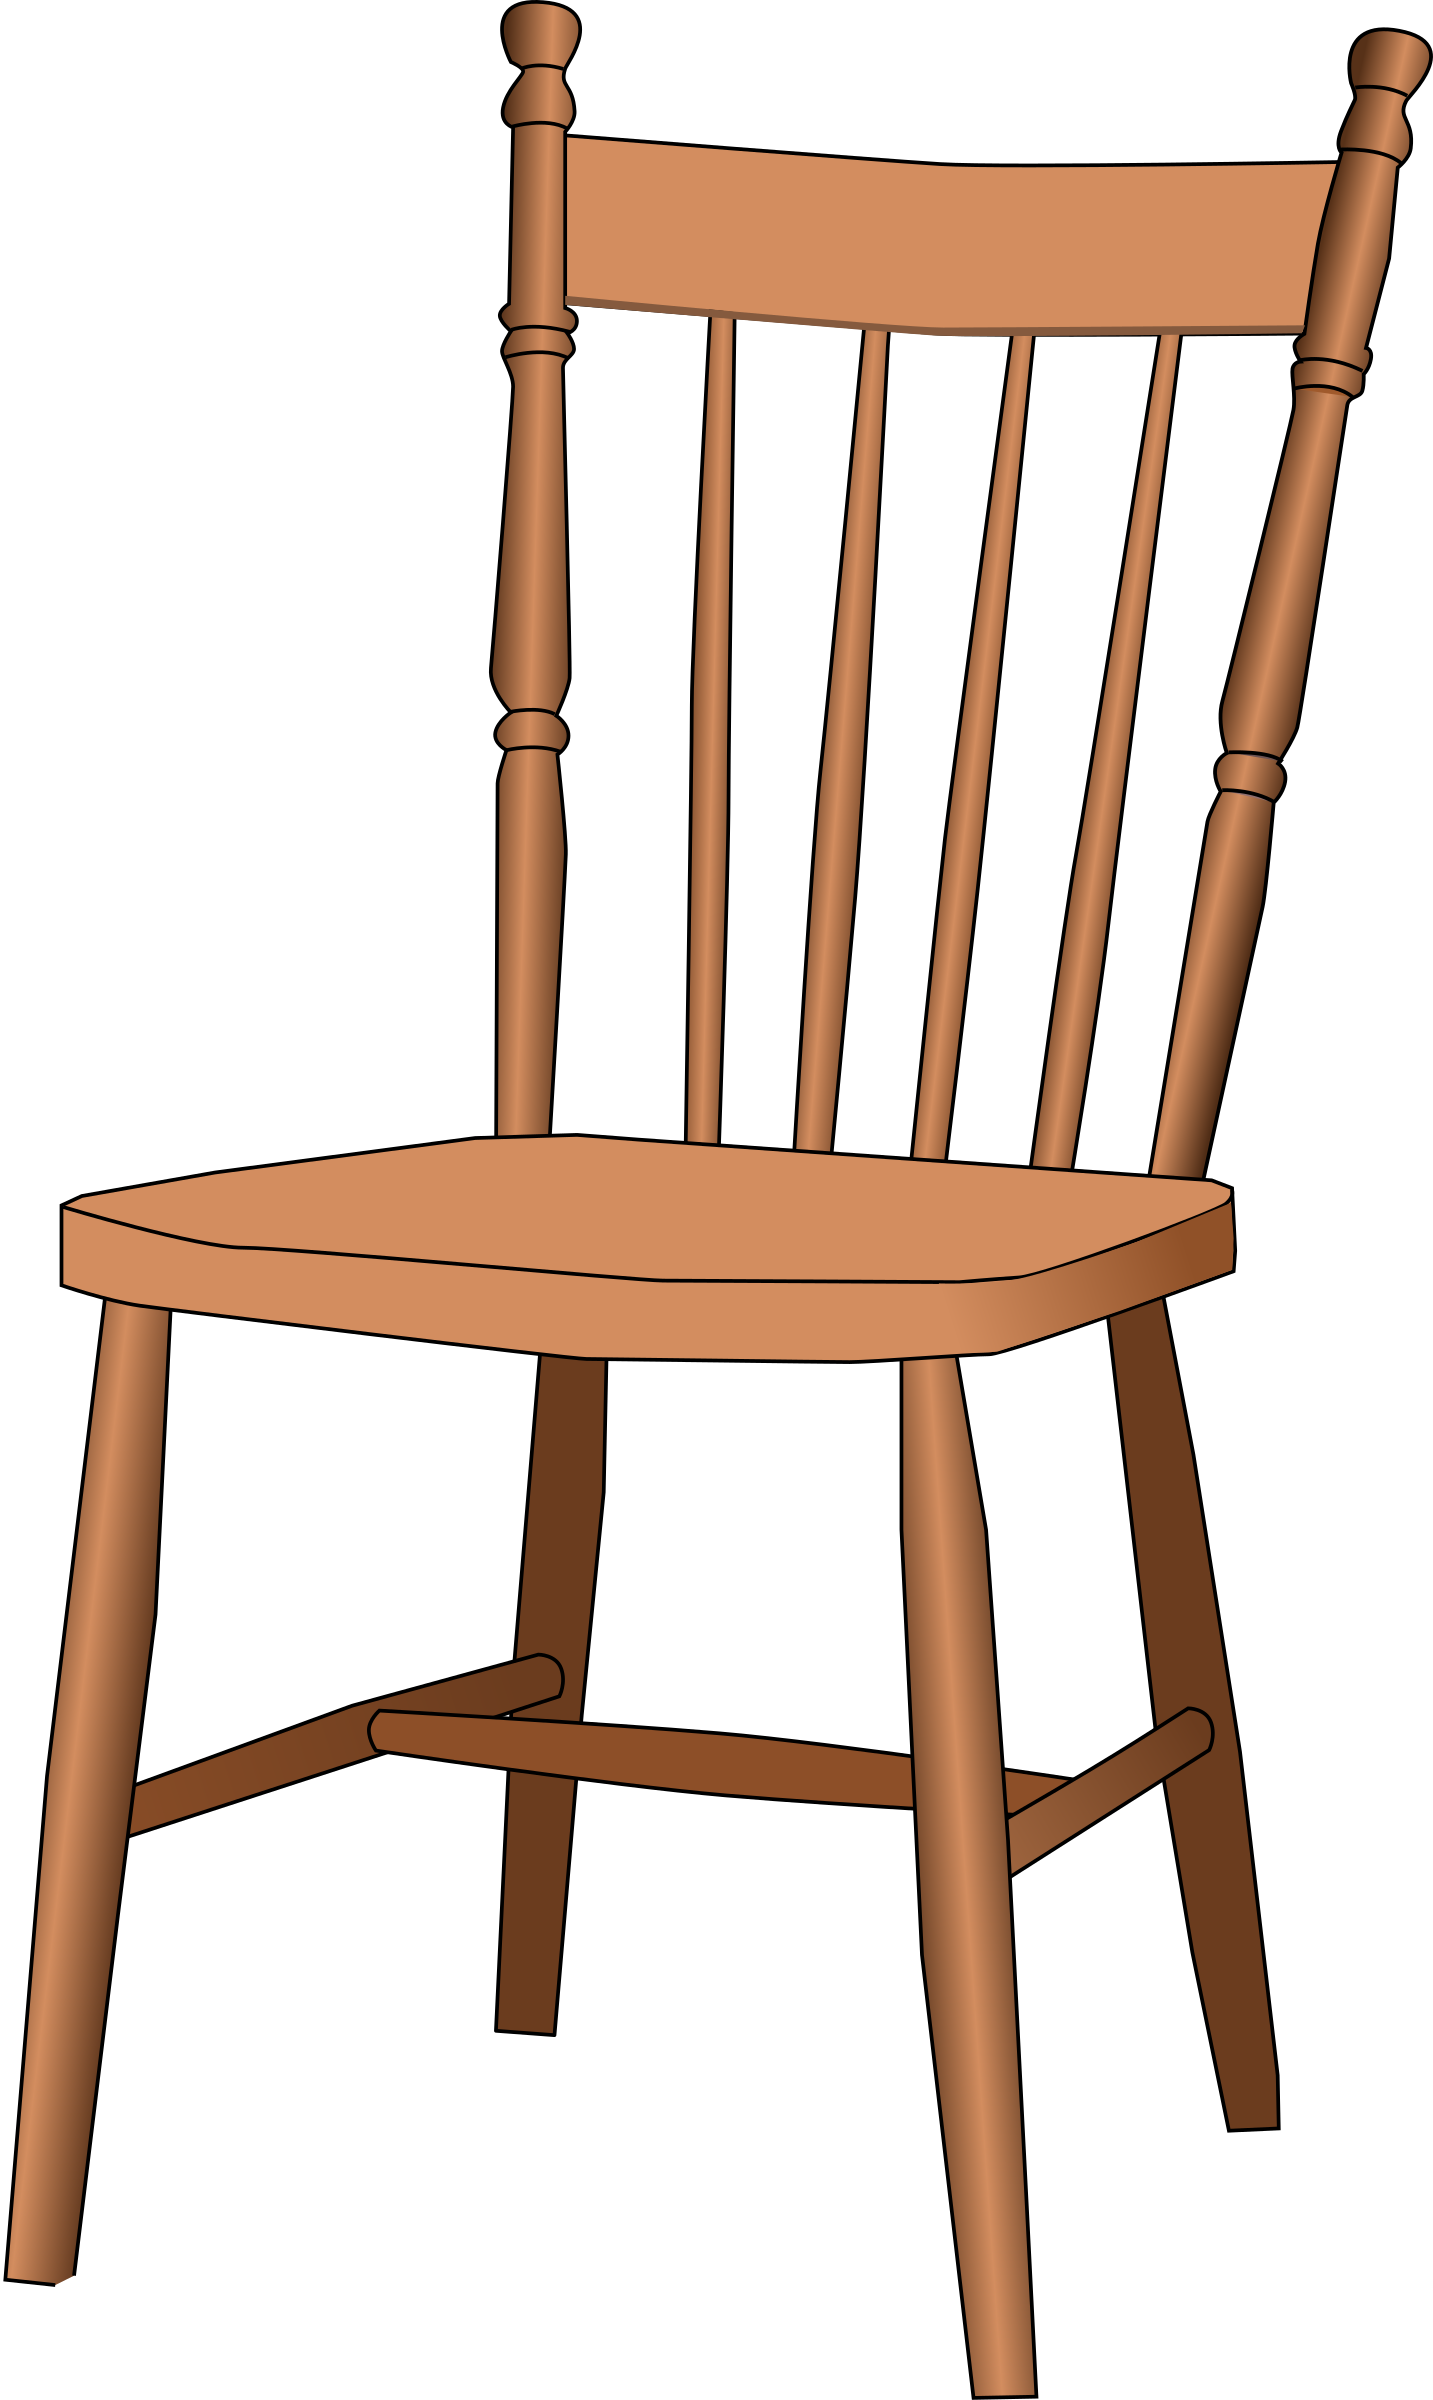 Furniture clipart wooden furniture. Chair station